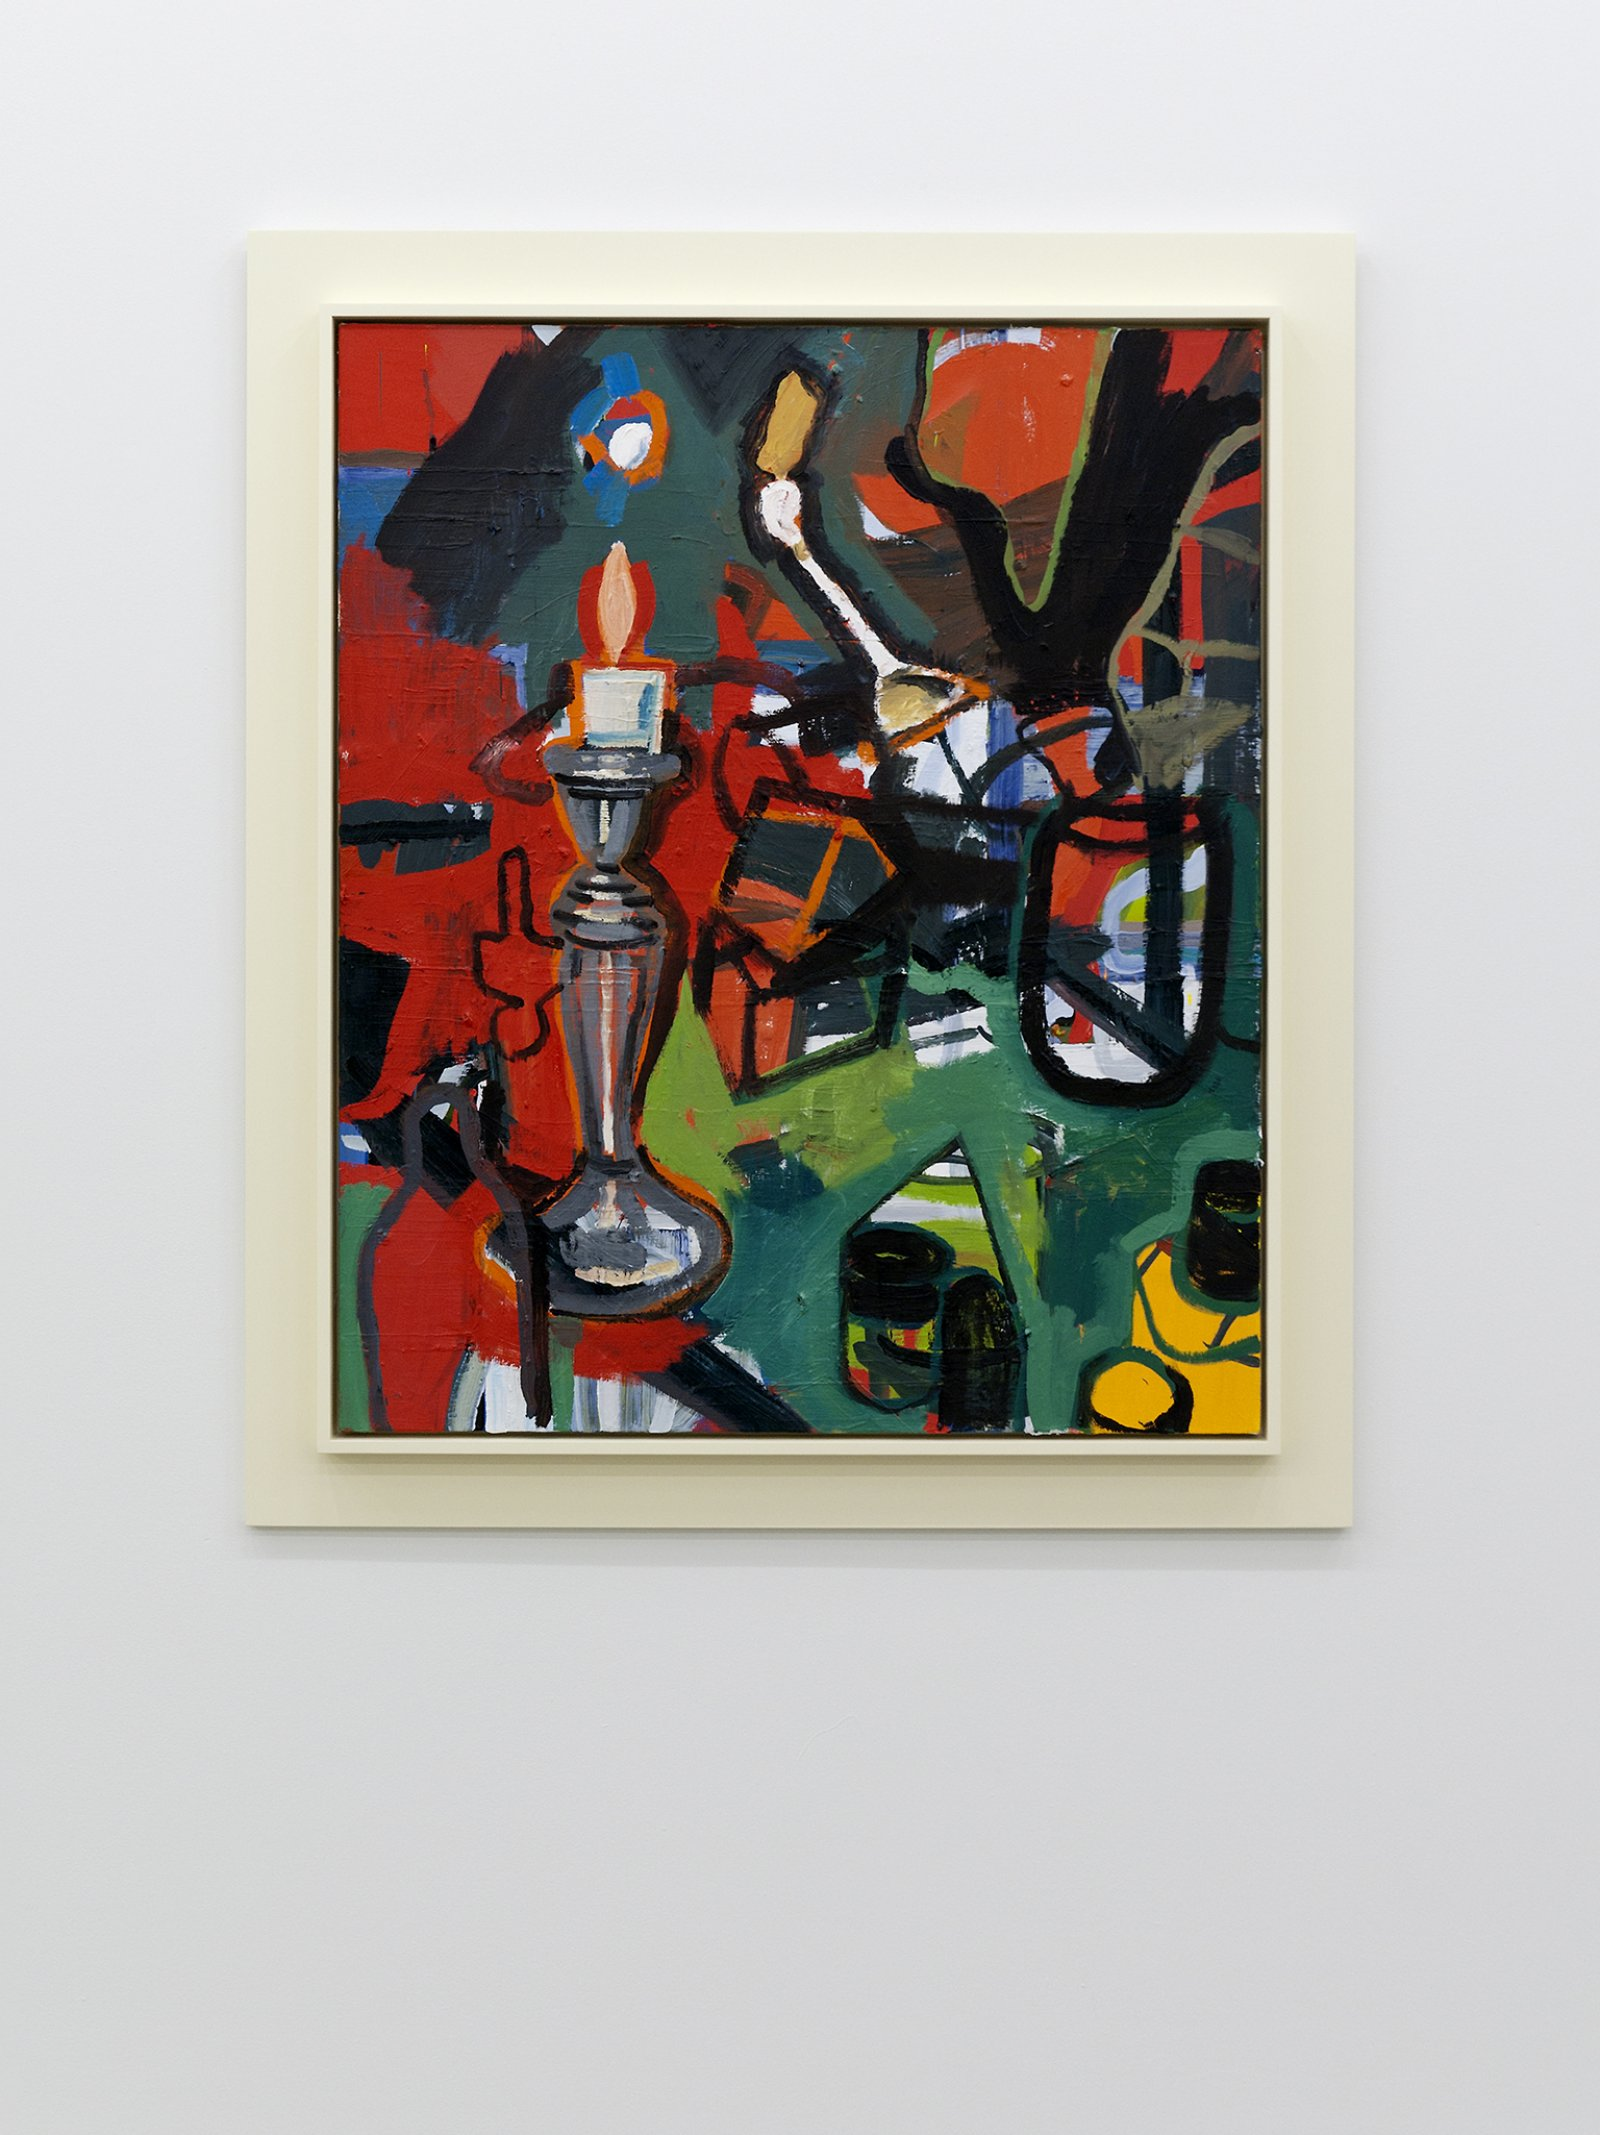 Damian Moppett, Large Red Candle, 2010, oil on canvas and wood frame, 50 x 44 in. (126 x 110 cm) by Damian Moppett